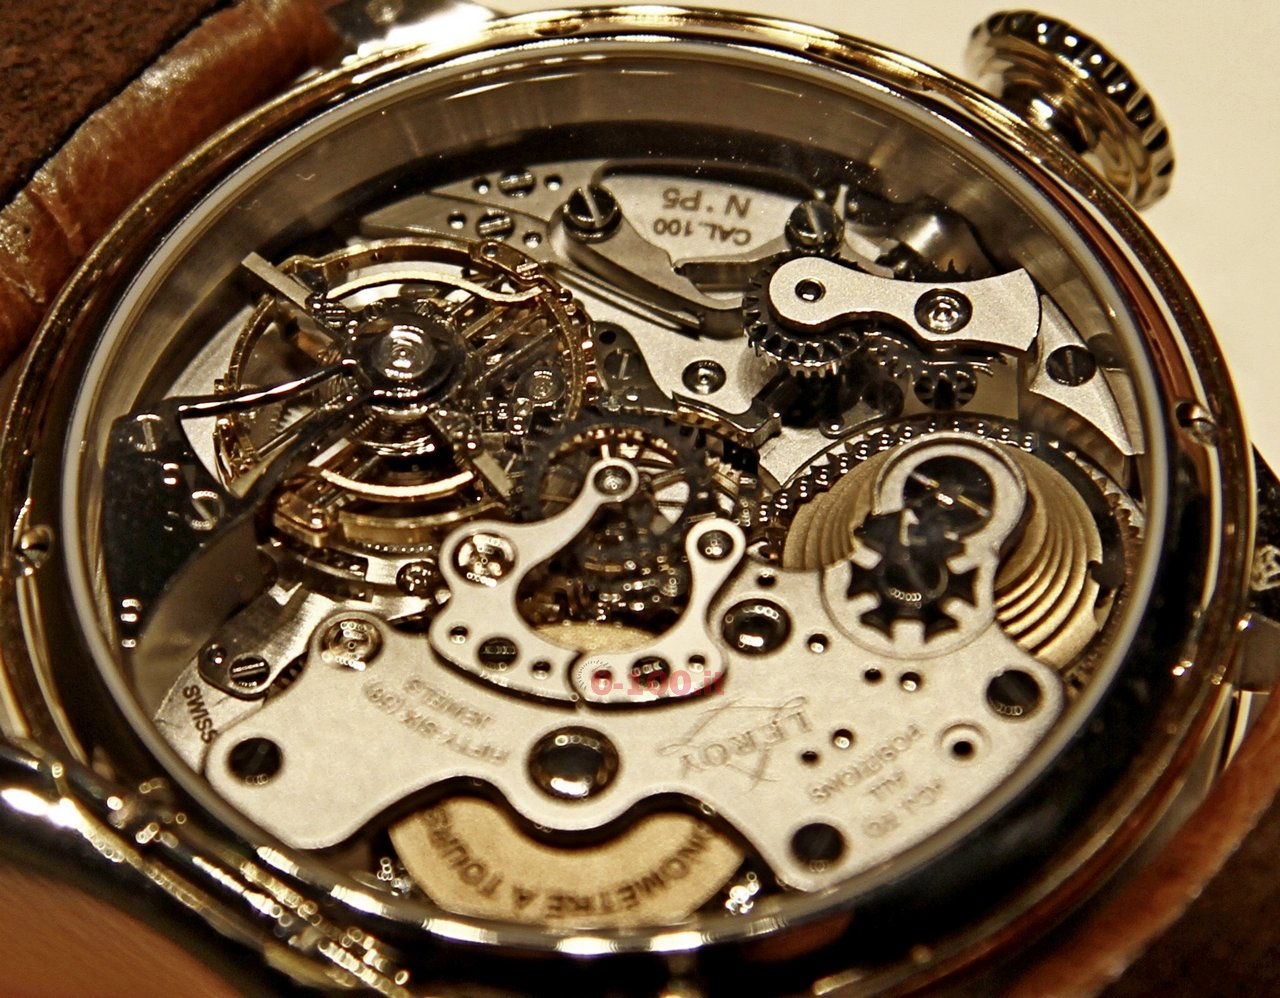 baselworld-2015_leroy-chronometer-a-tourbillon-0-100-15